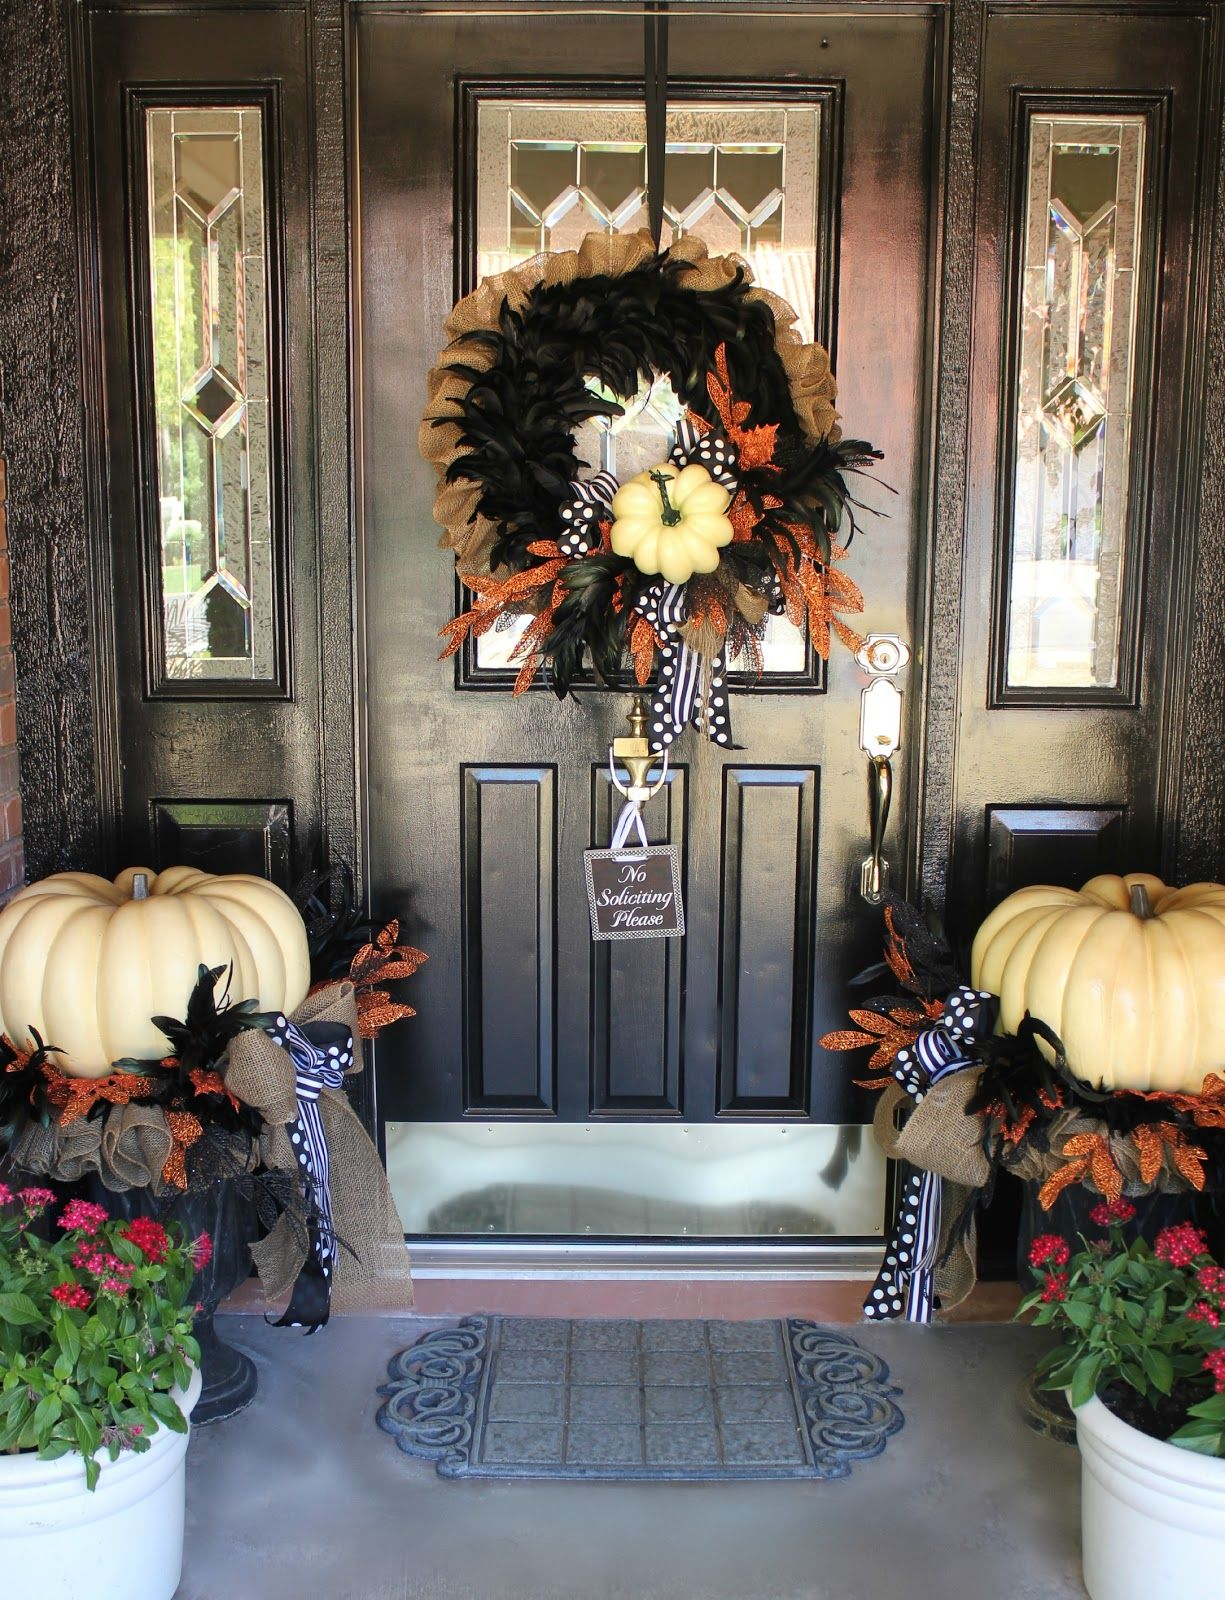 25 elegant halloween decorations ideas | pumpkin wreath, front